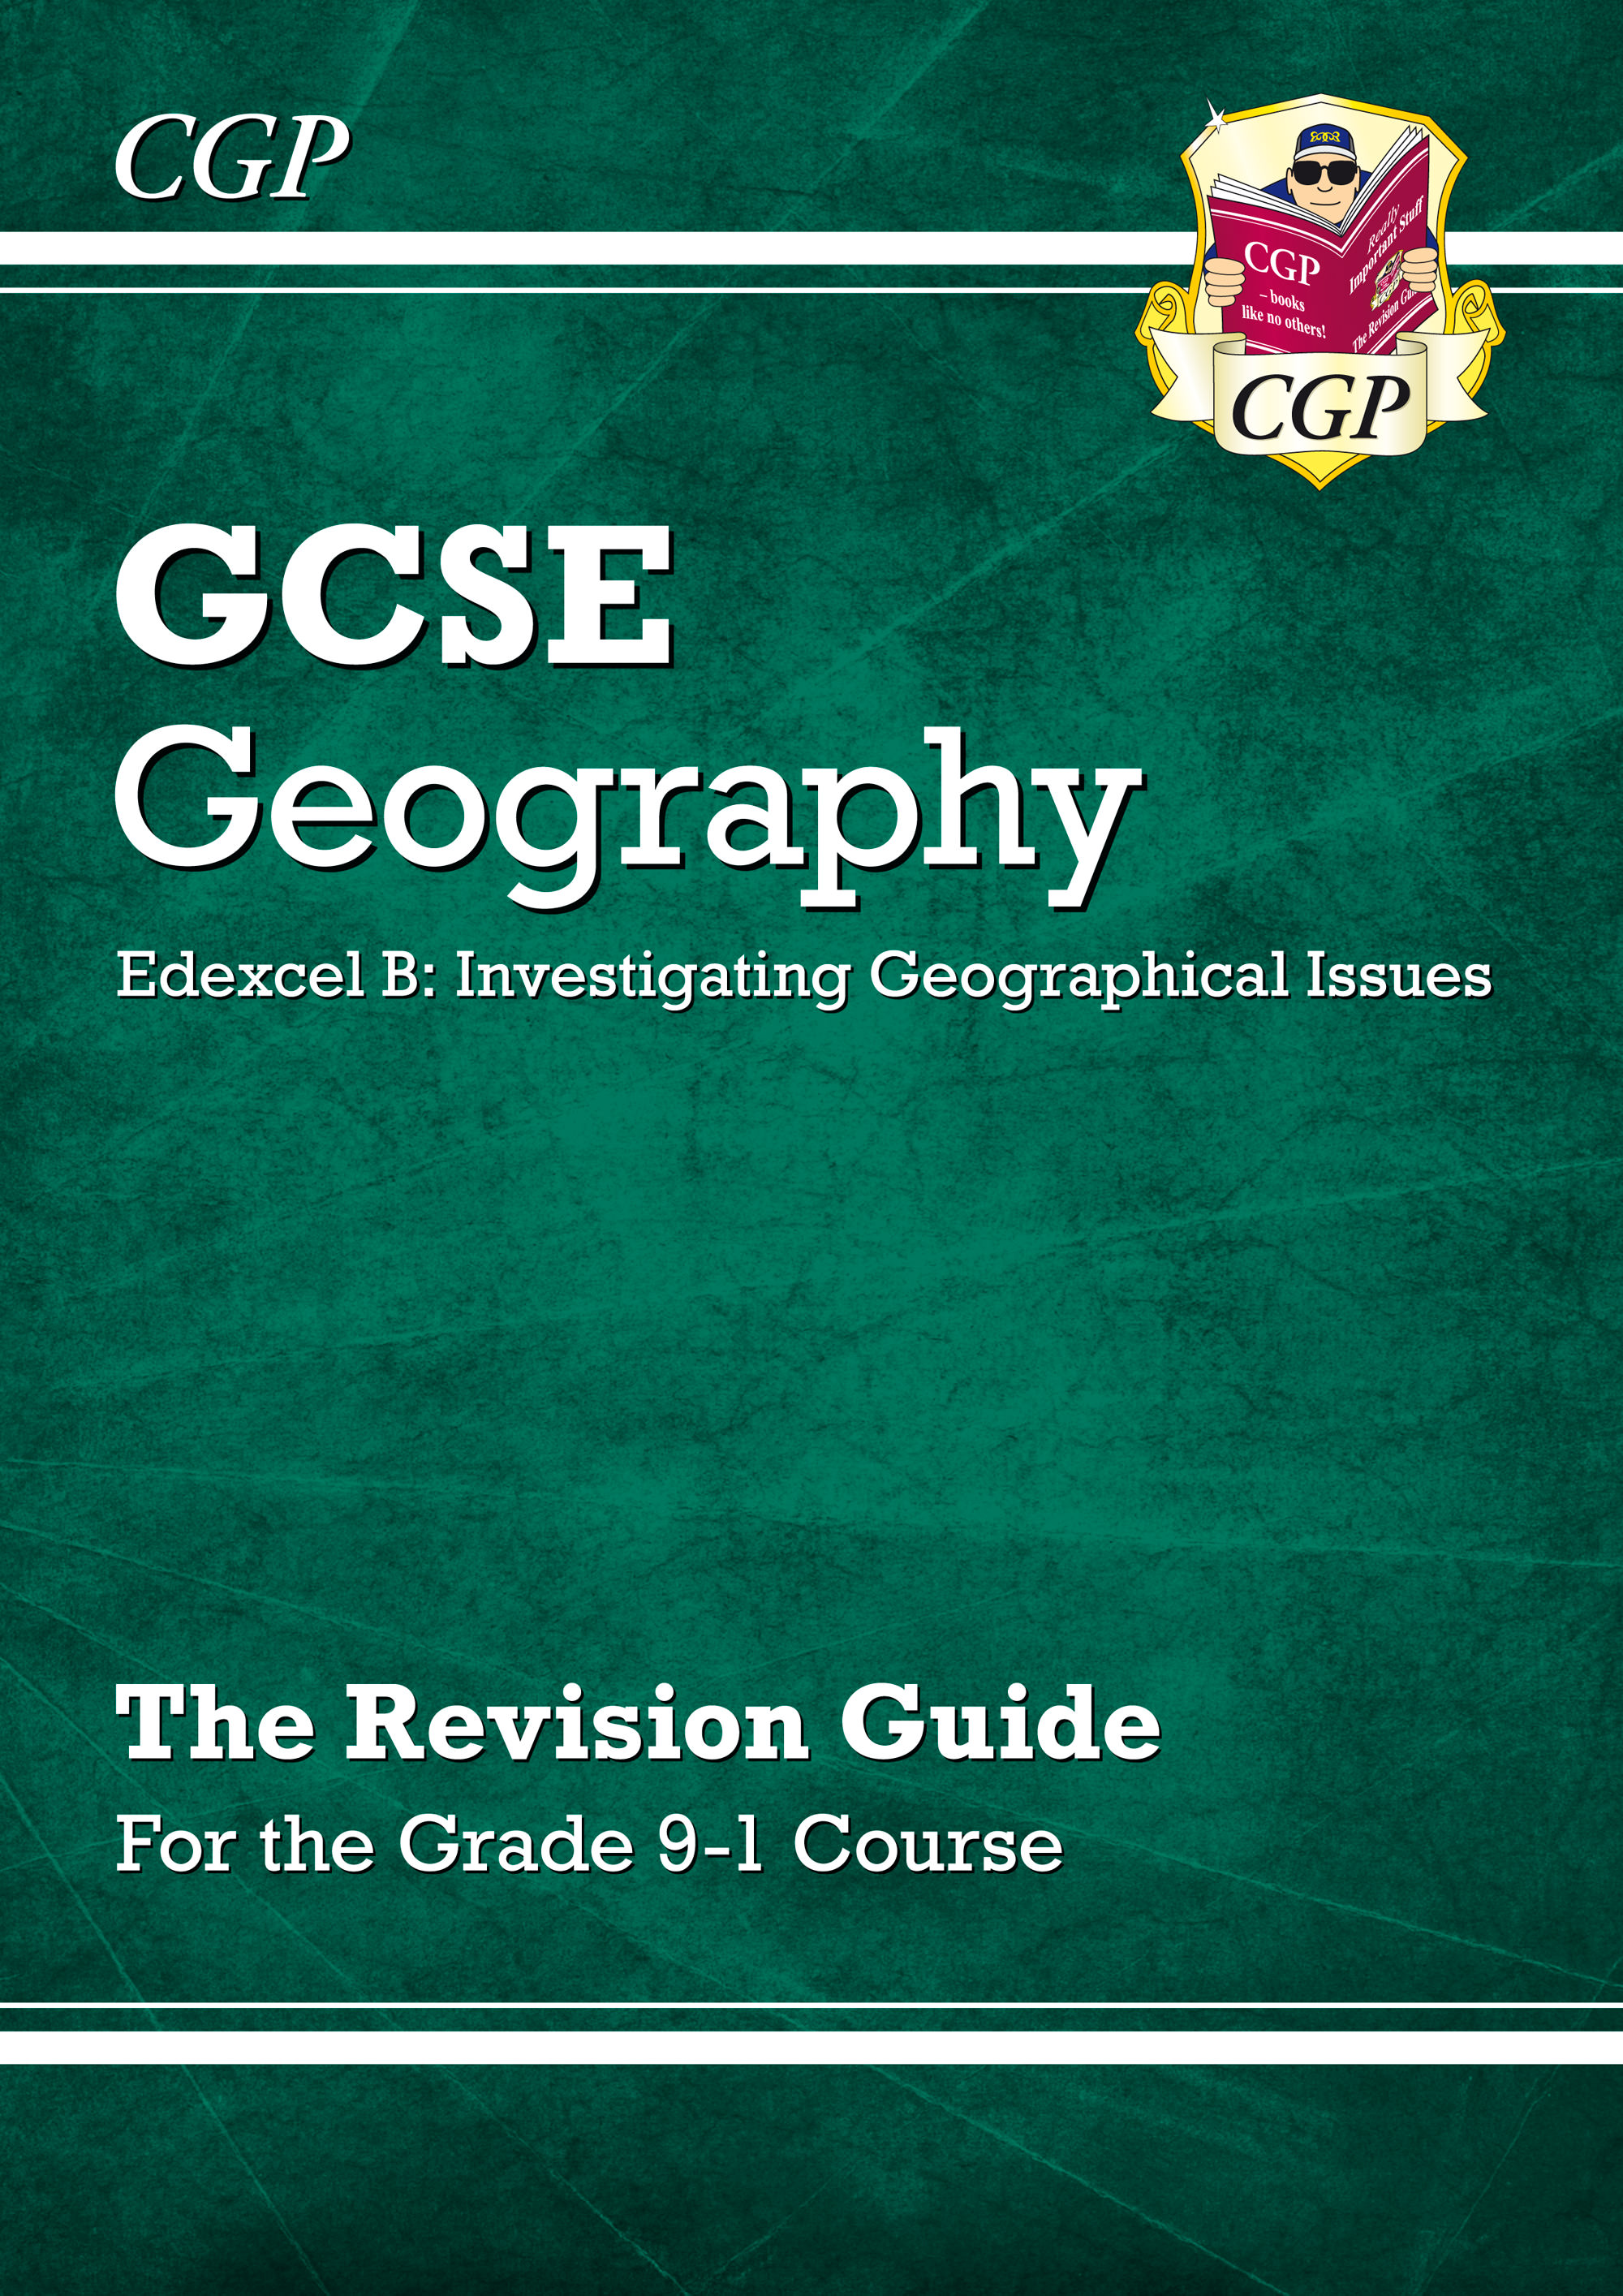 GER41 - New Grade 9-1 GCSE Geography Edexcel B: Investigating Geographical Issues - Revision Guide